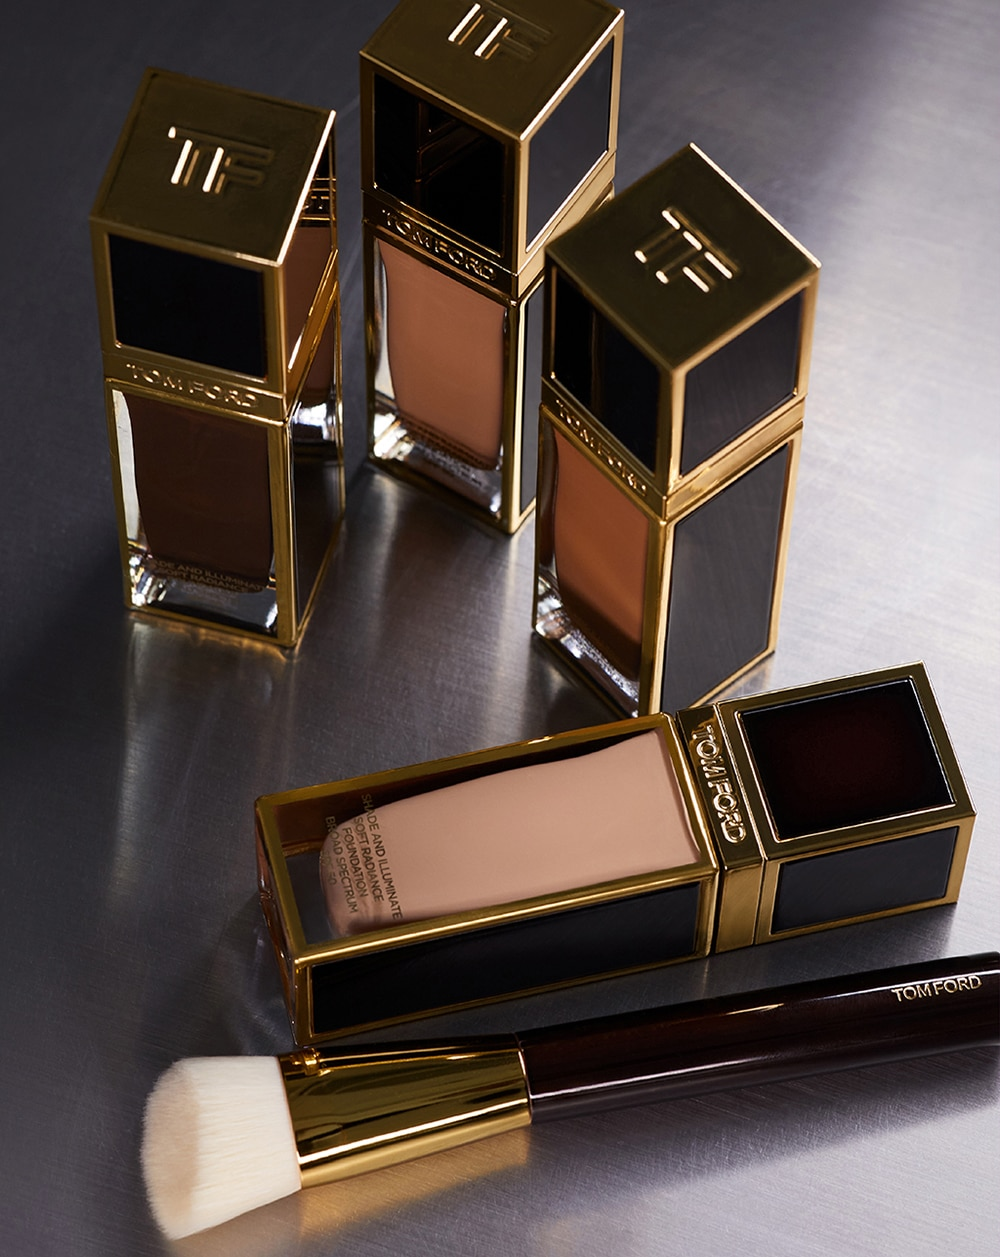 Editor S Pick Of The Day Tom Ford Shade And Illuminate Soft Radiance Foundation Metro Style